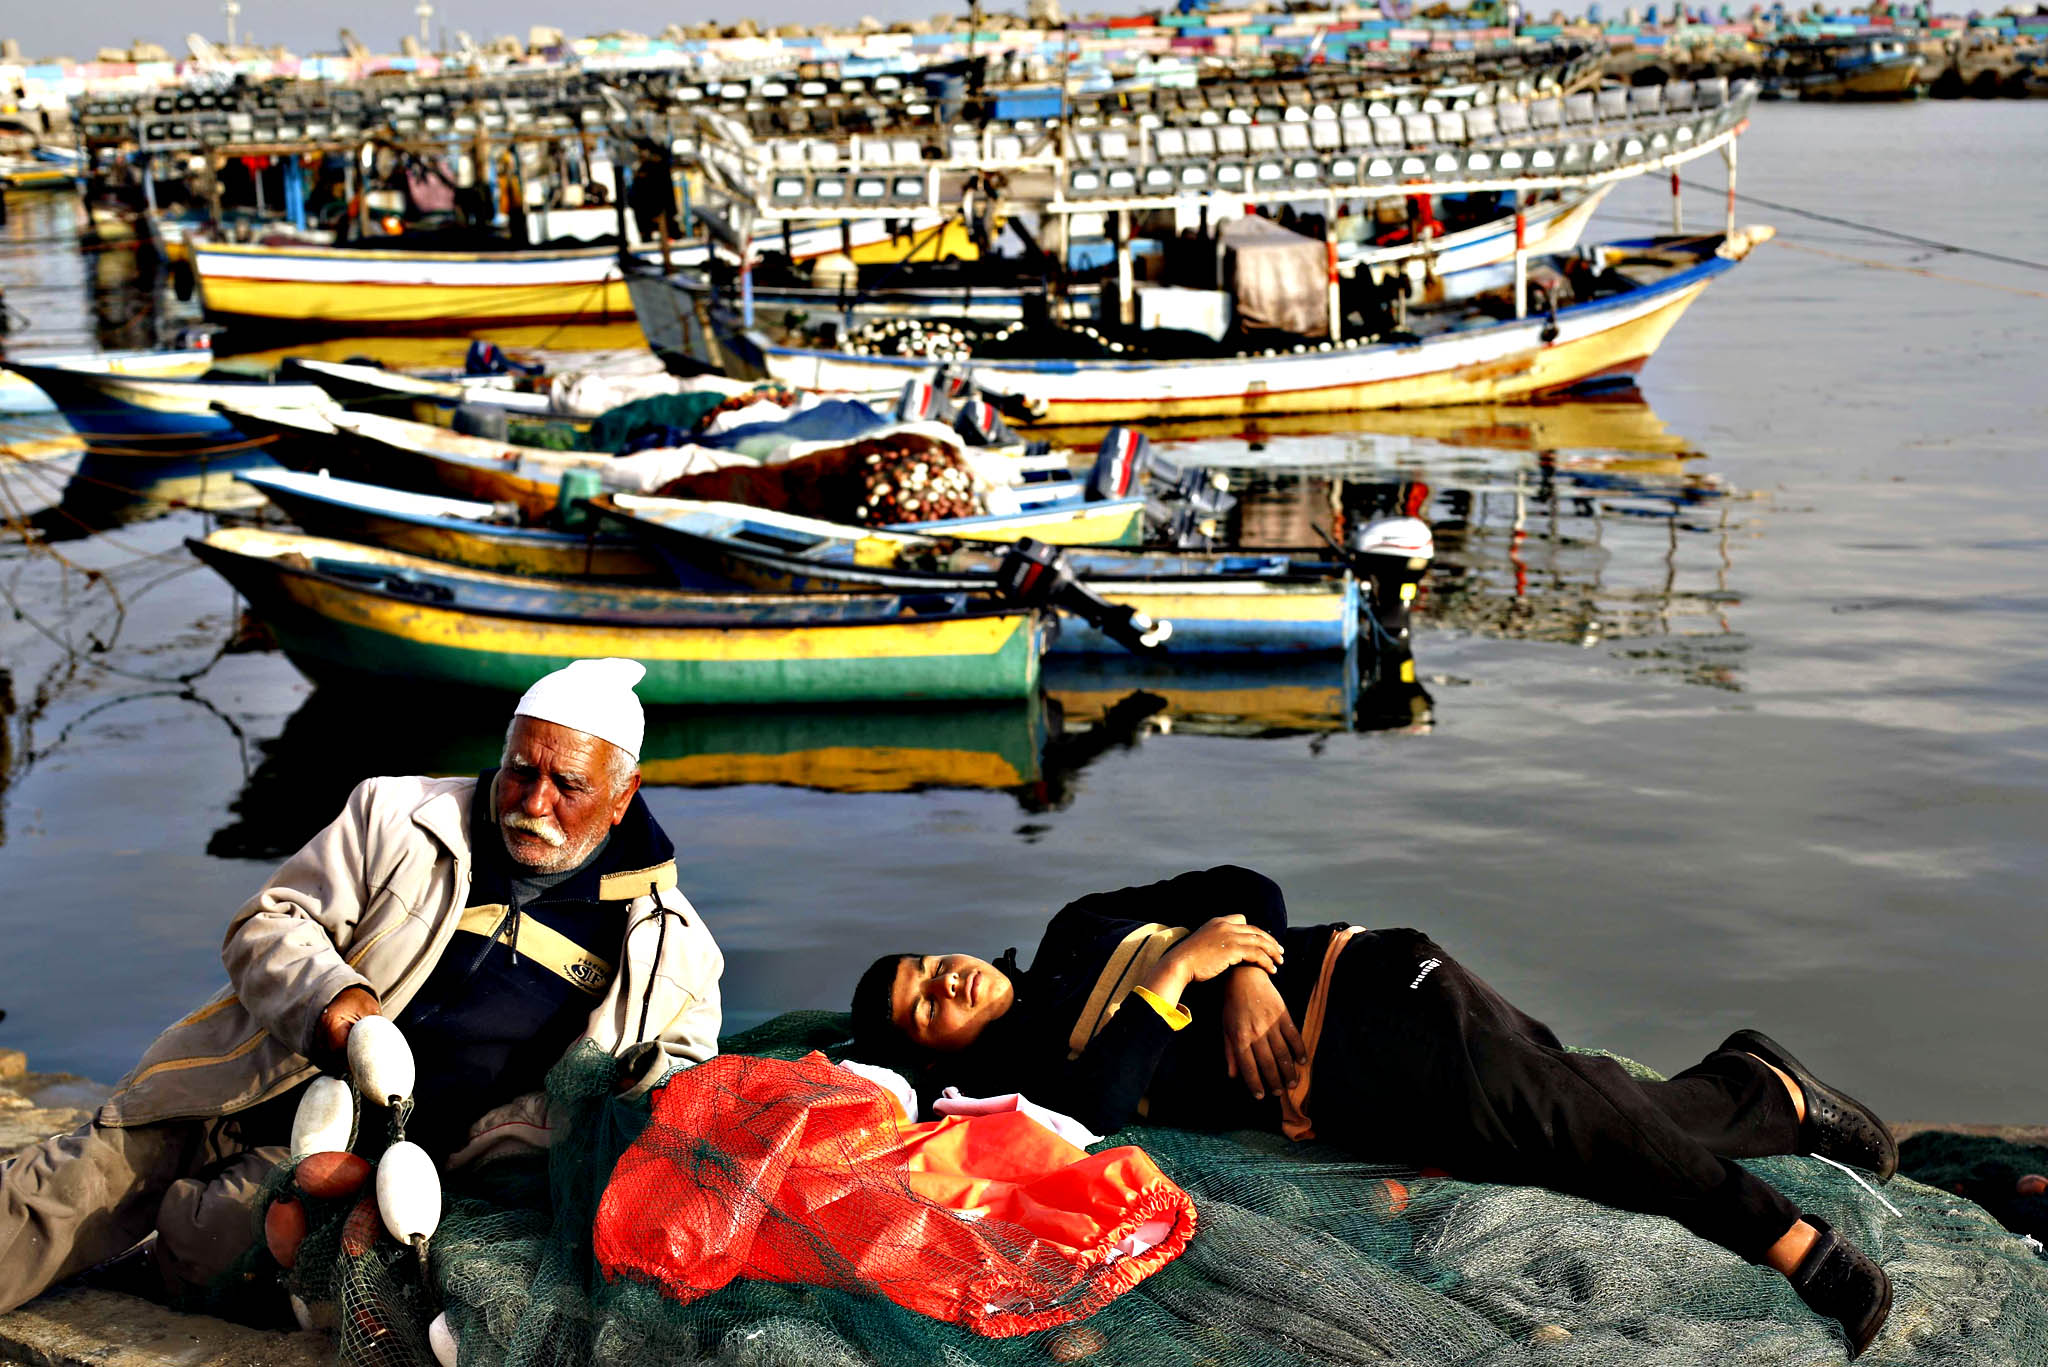 Palestinian fishermen rest after arriving back from a fishing trip at the port of Gaza City on April 21, 2015.